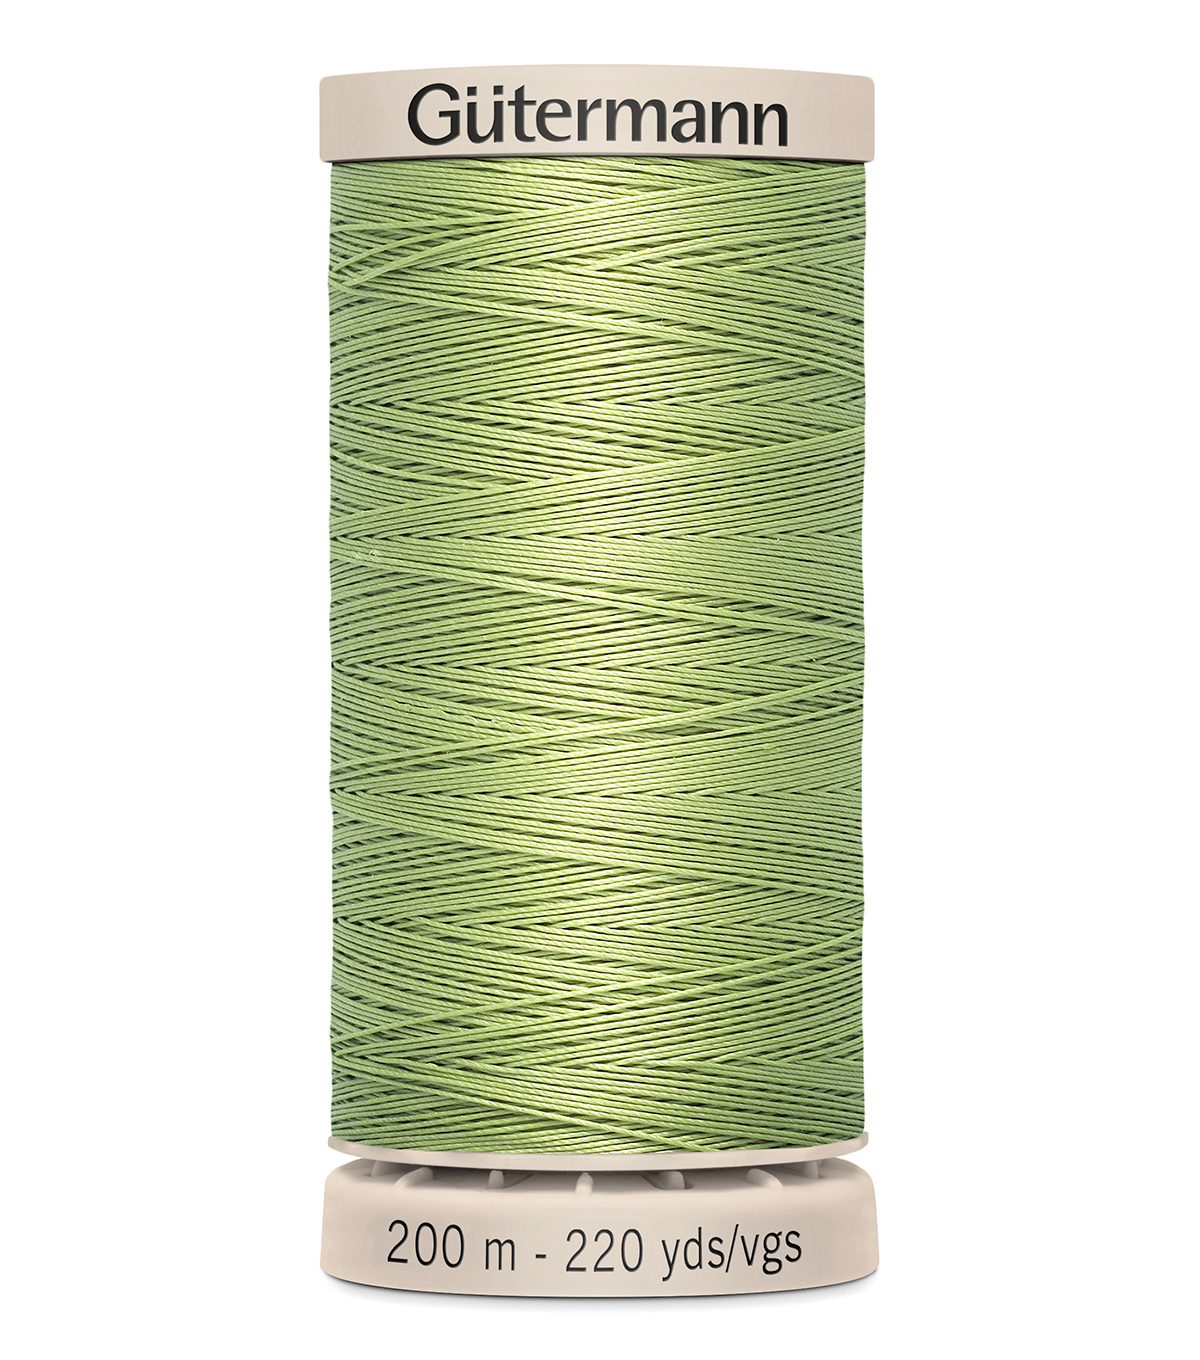 Gutermann Hand Quilting Thread 200 Meters (220 Yrds)-Primary, Light Fern #9837